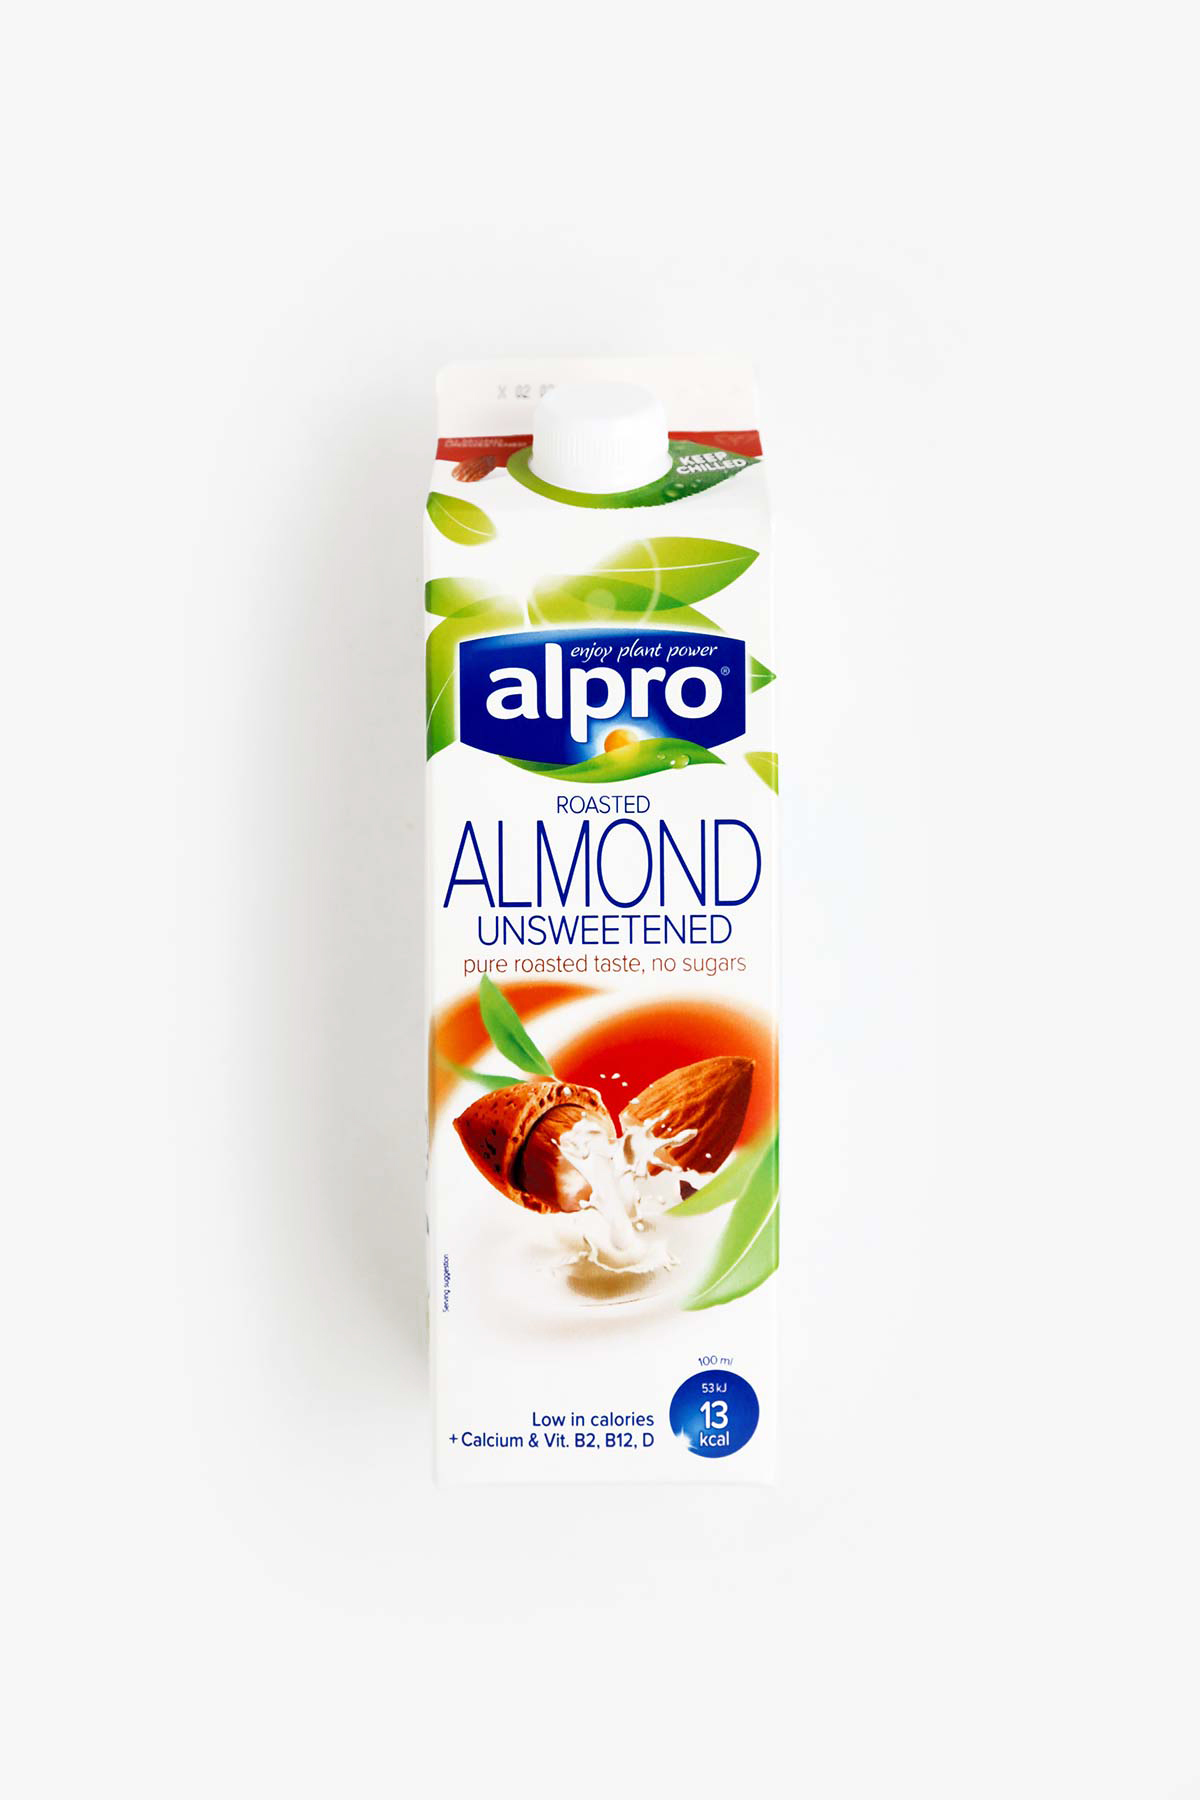 Keto Almond Milk, a guide to keto foods for low carb. keto, keto ingredients, keto foods, keto milk, plant milk, ketogenic diet, ketogenic milk, keto shopping list, low carb, low carb foods, low carb milk, lchf, lchf foods, lchf milk